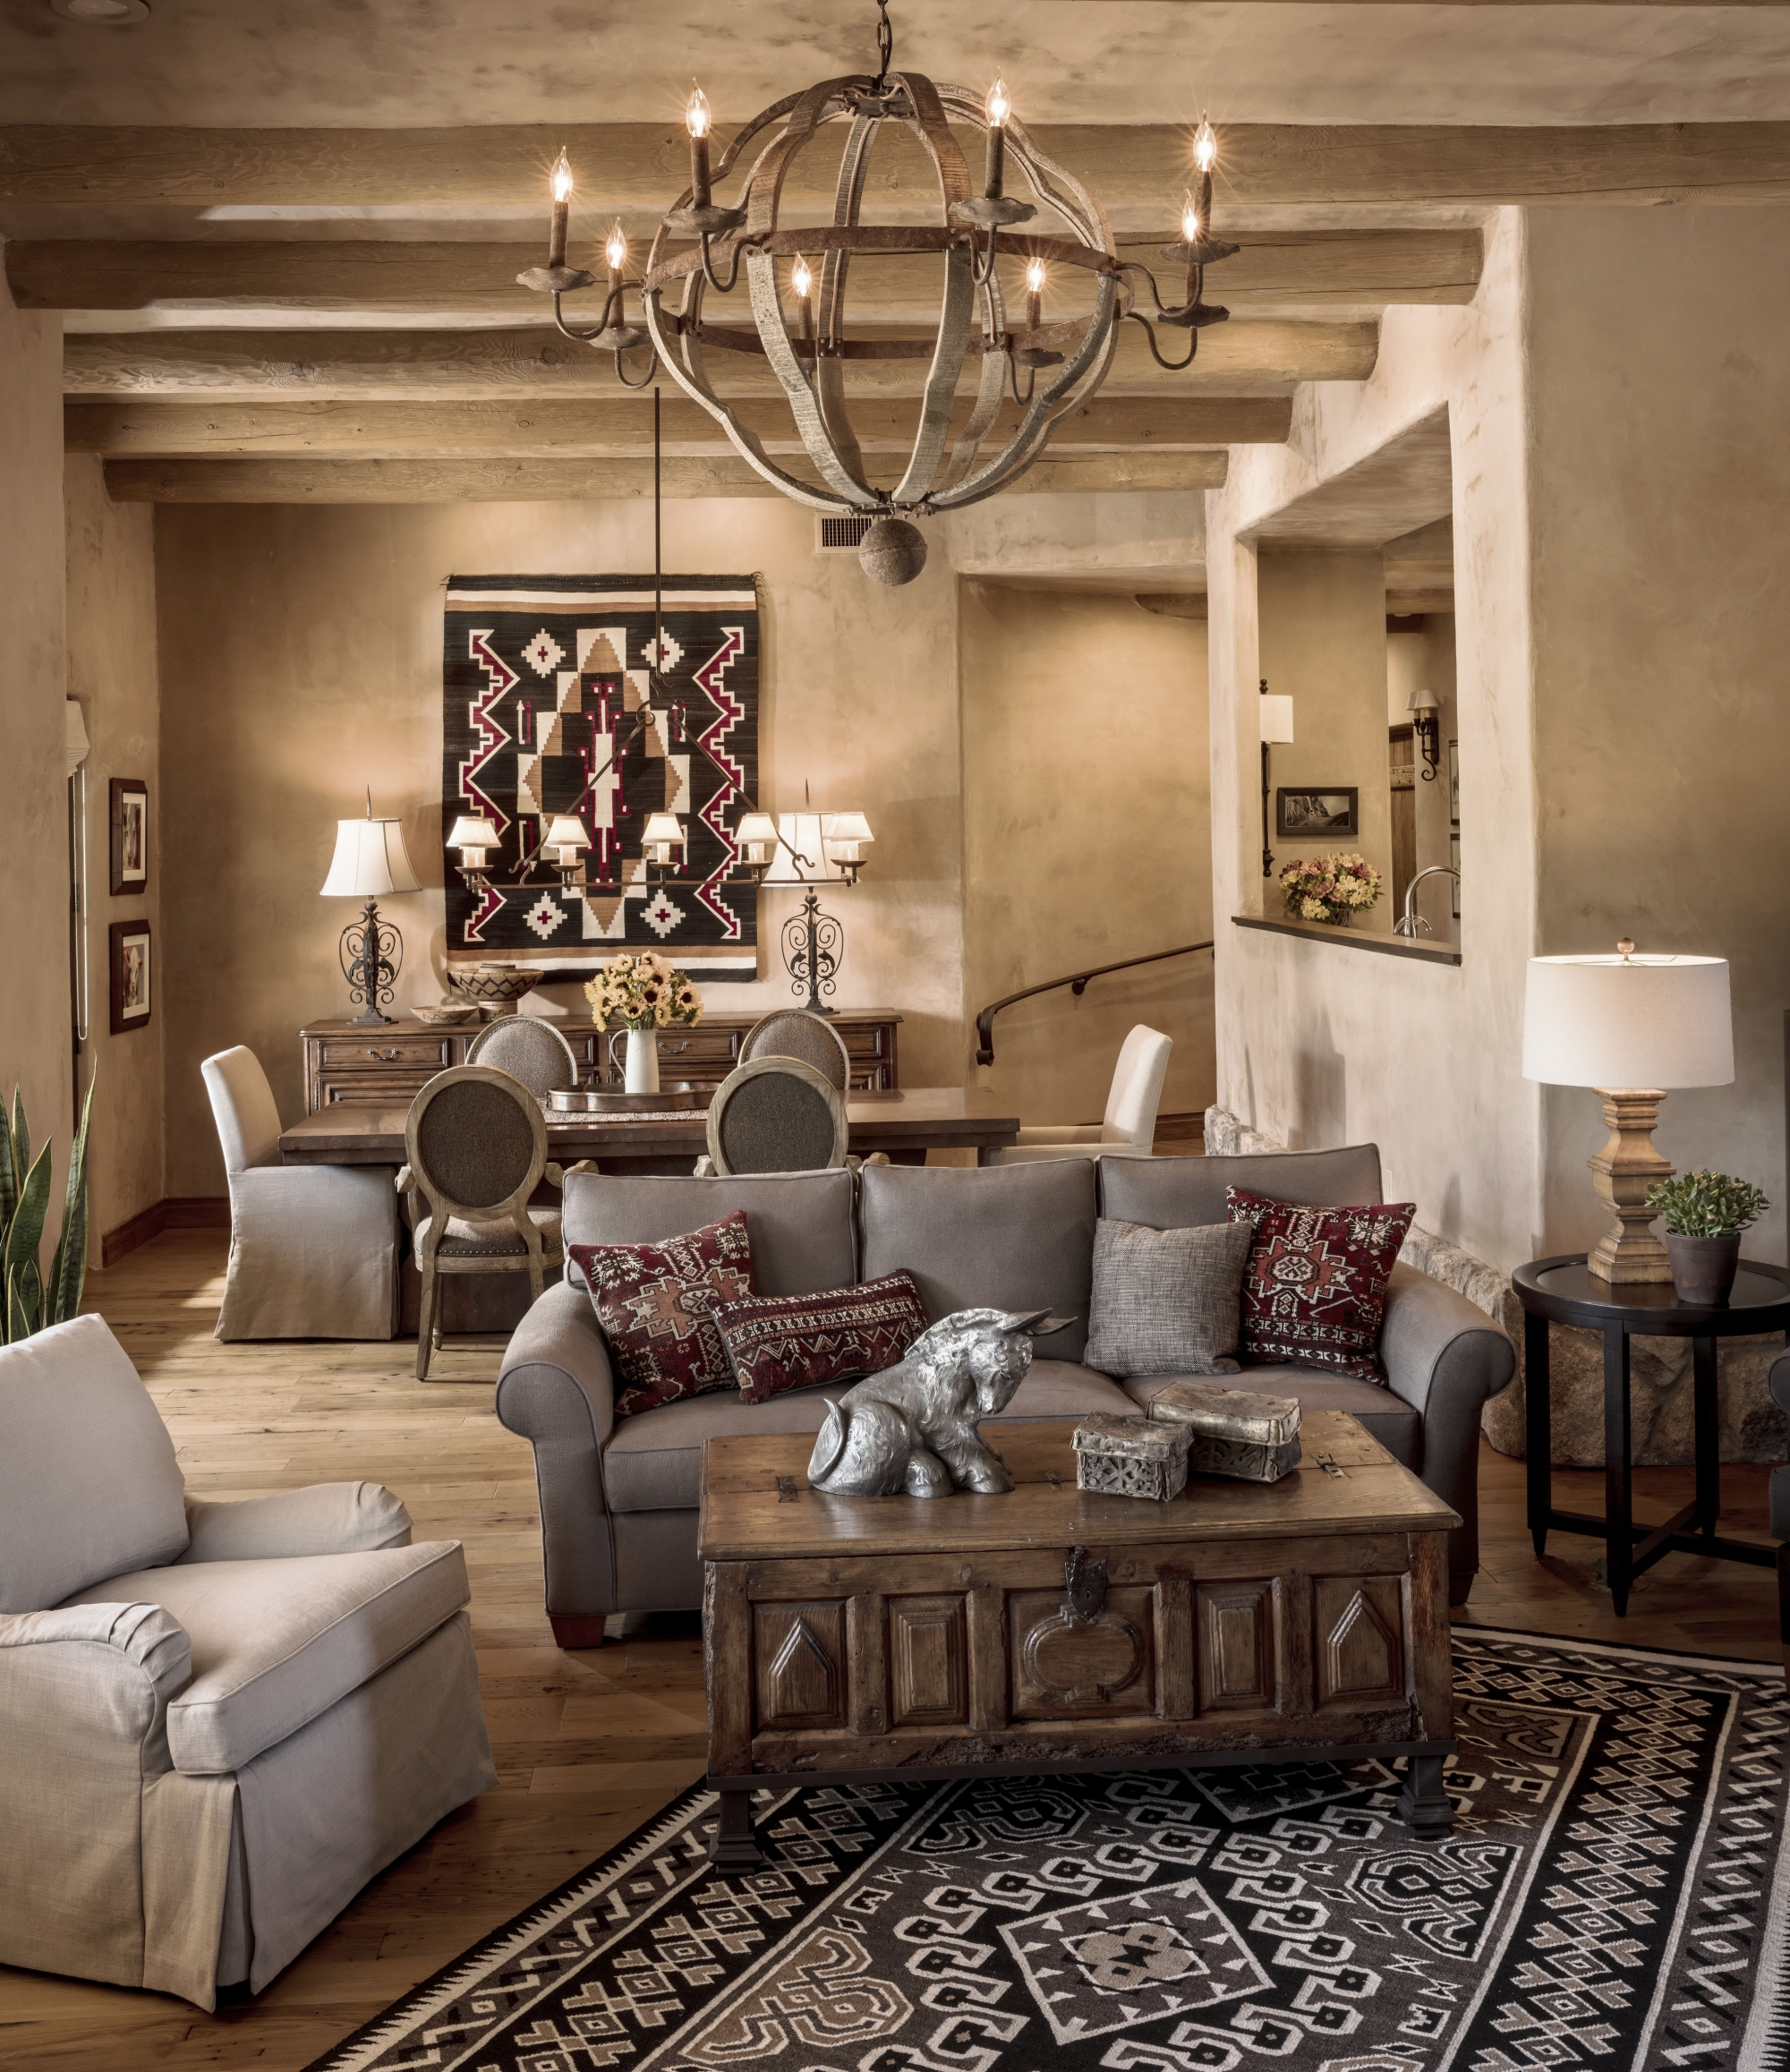 Warm Living Room Ideas: Warm And Casual Southwest Style Is Hot In Decor